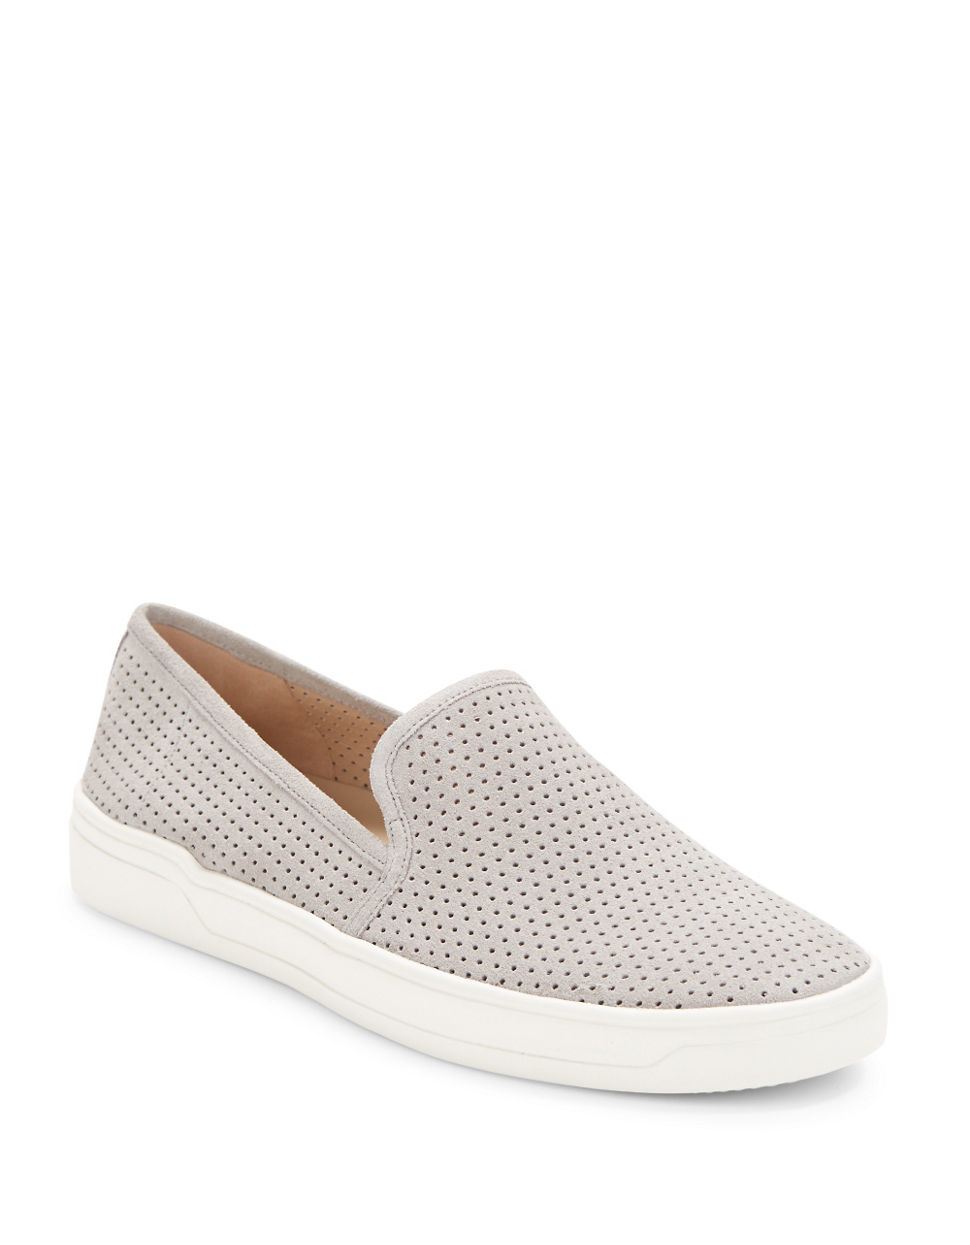 Arider White Slip On Men S Shoes White